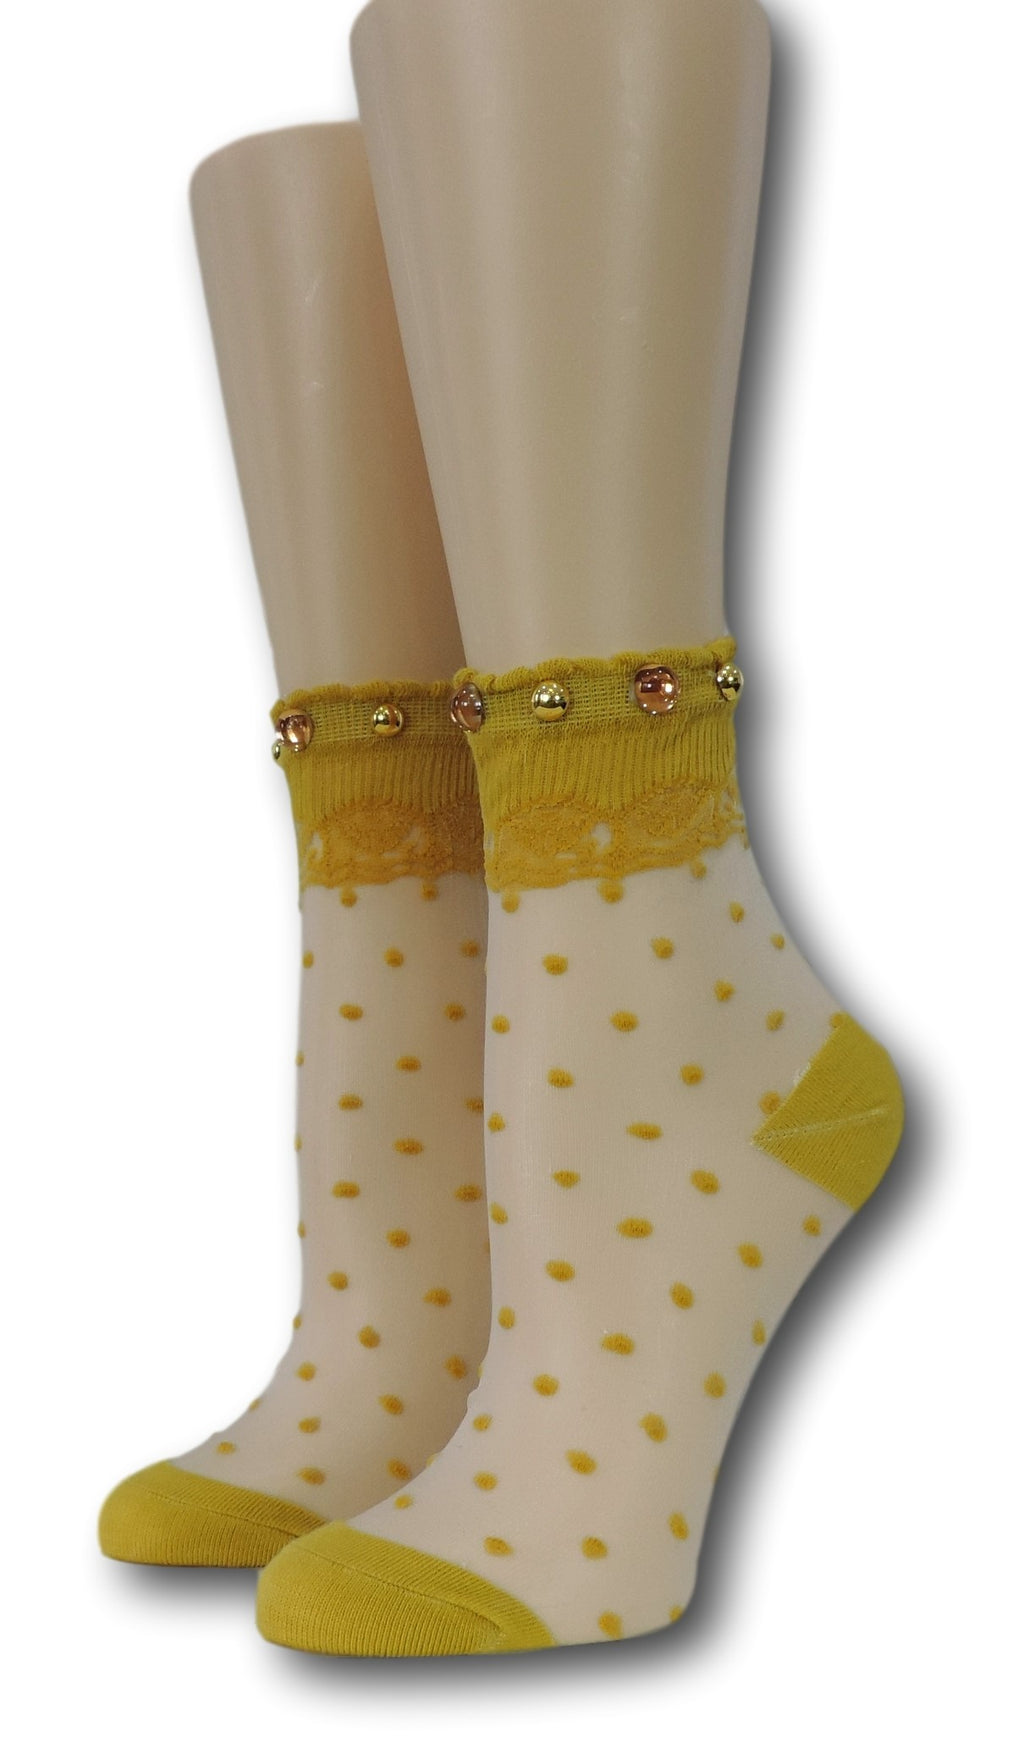 Mustard Royal Dotted Sheer Socks with beads